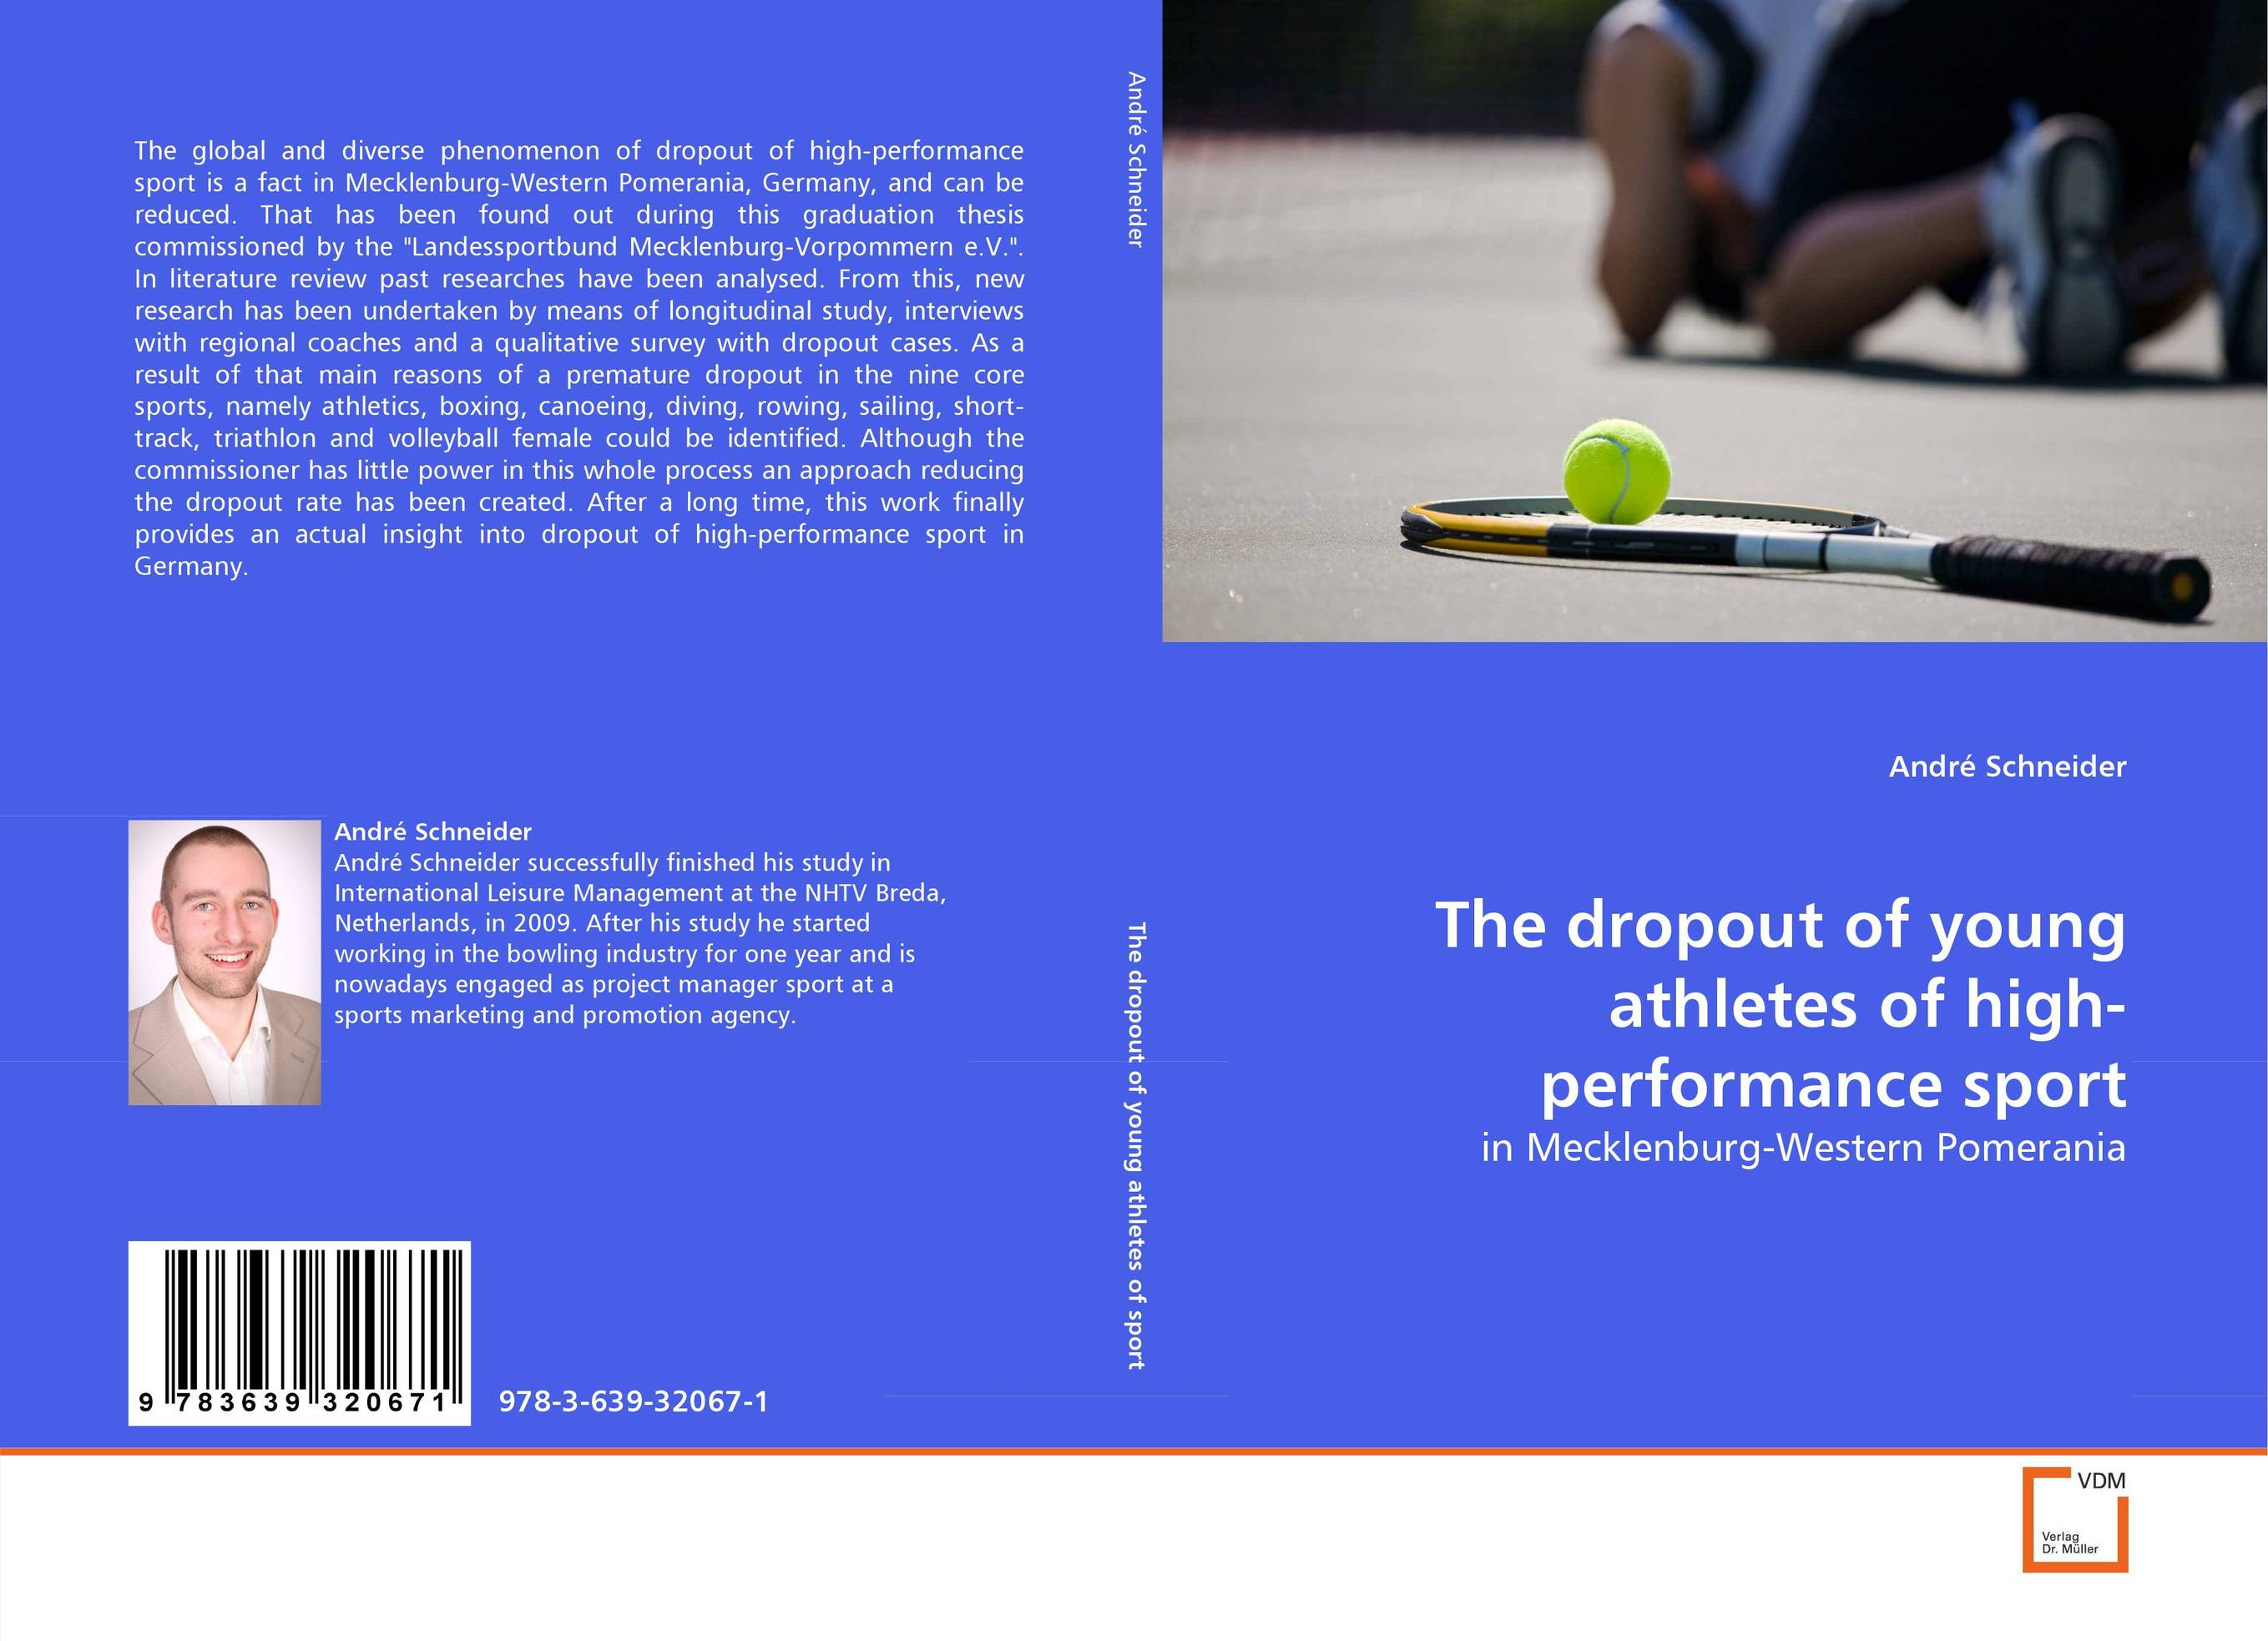 The dropout of young athletes of high-performance sport